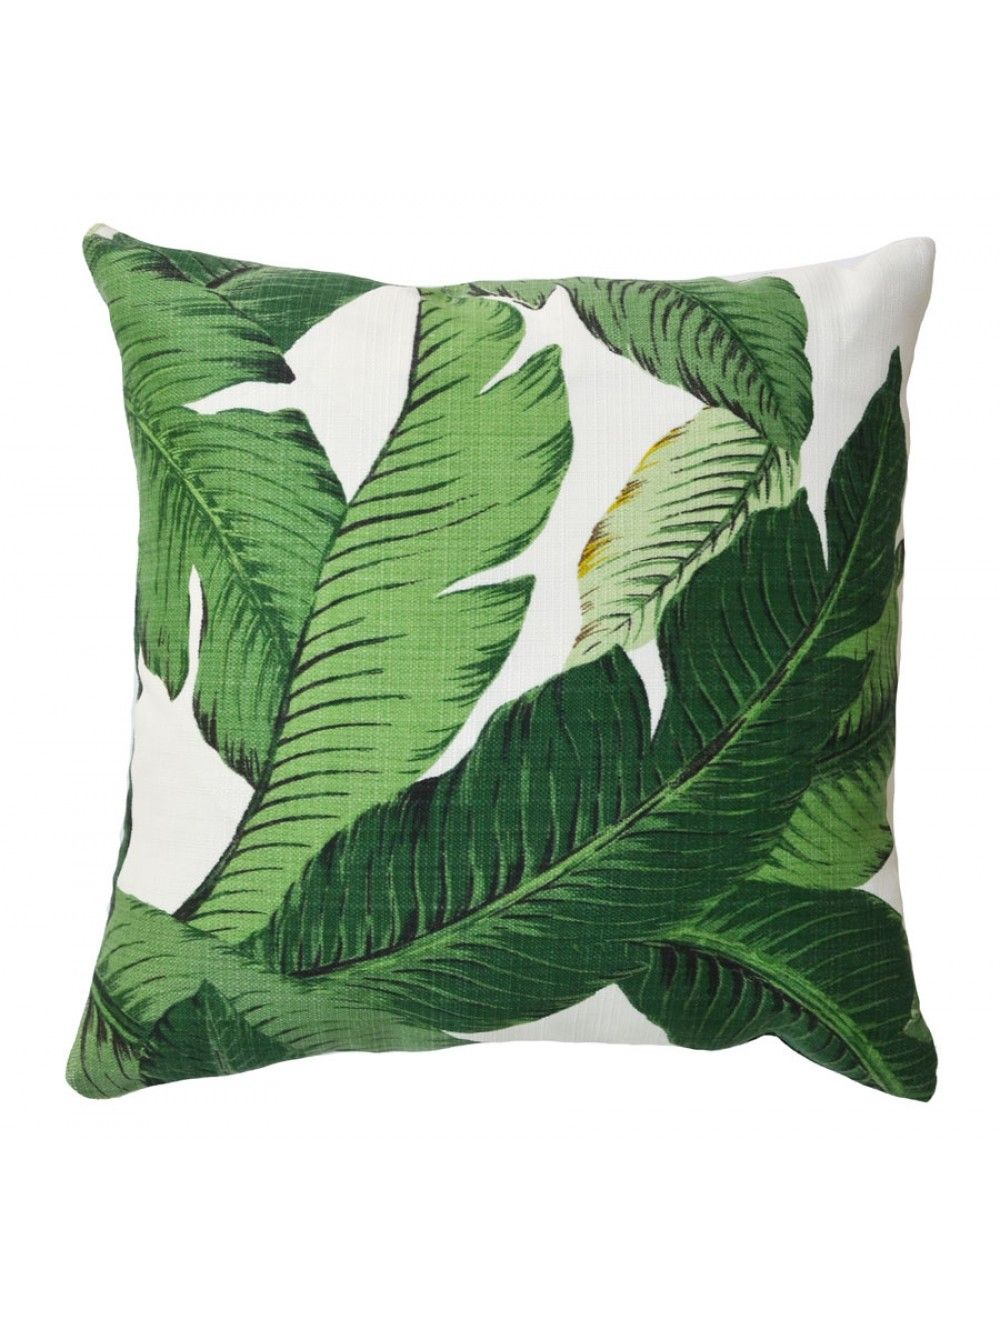 Bananas Over Banana Palm Pillow Luluandgeorgia